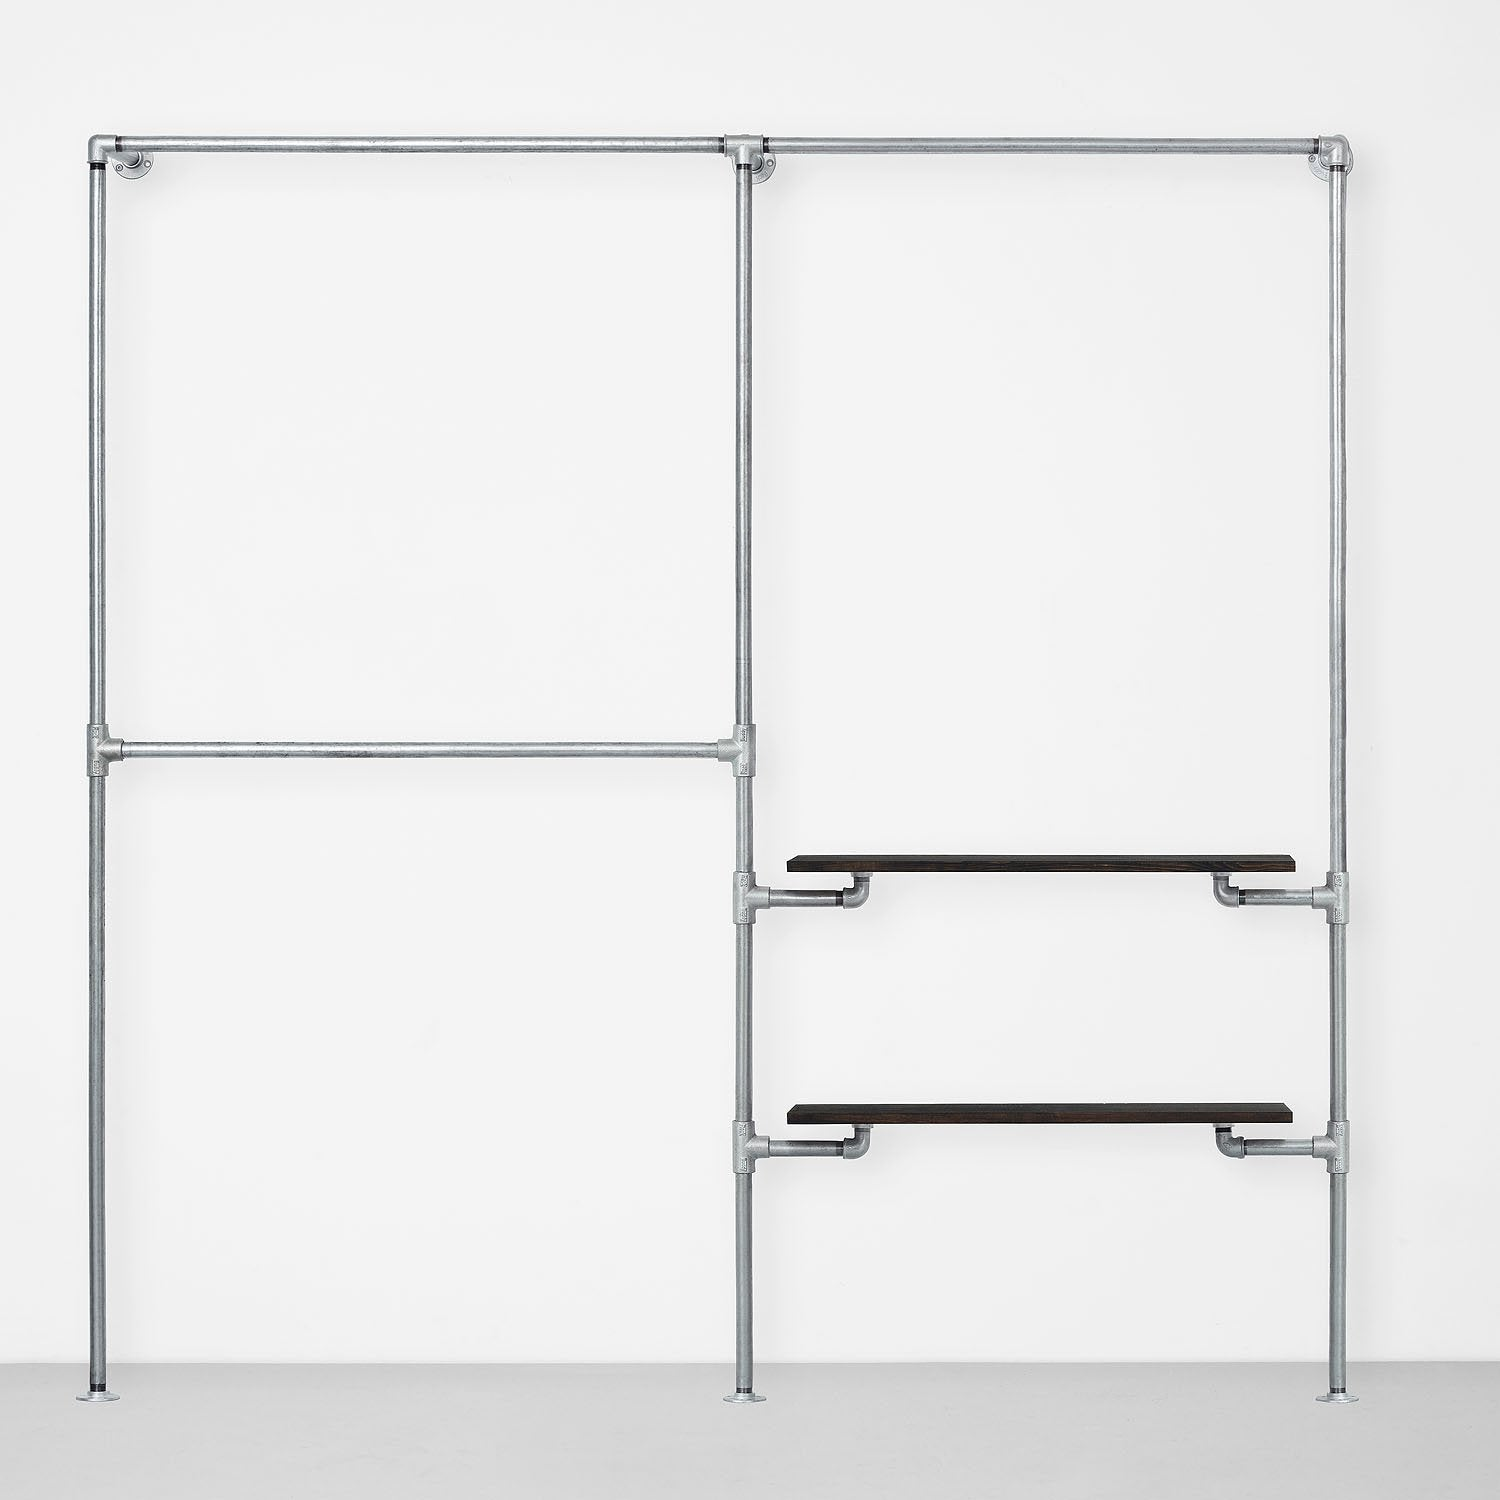 The Walk-In 2 row wardrobe system - (2 rails/ 1 rail + 2 shelves)